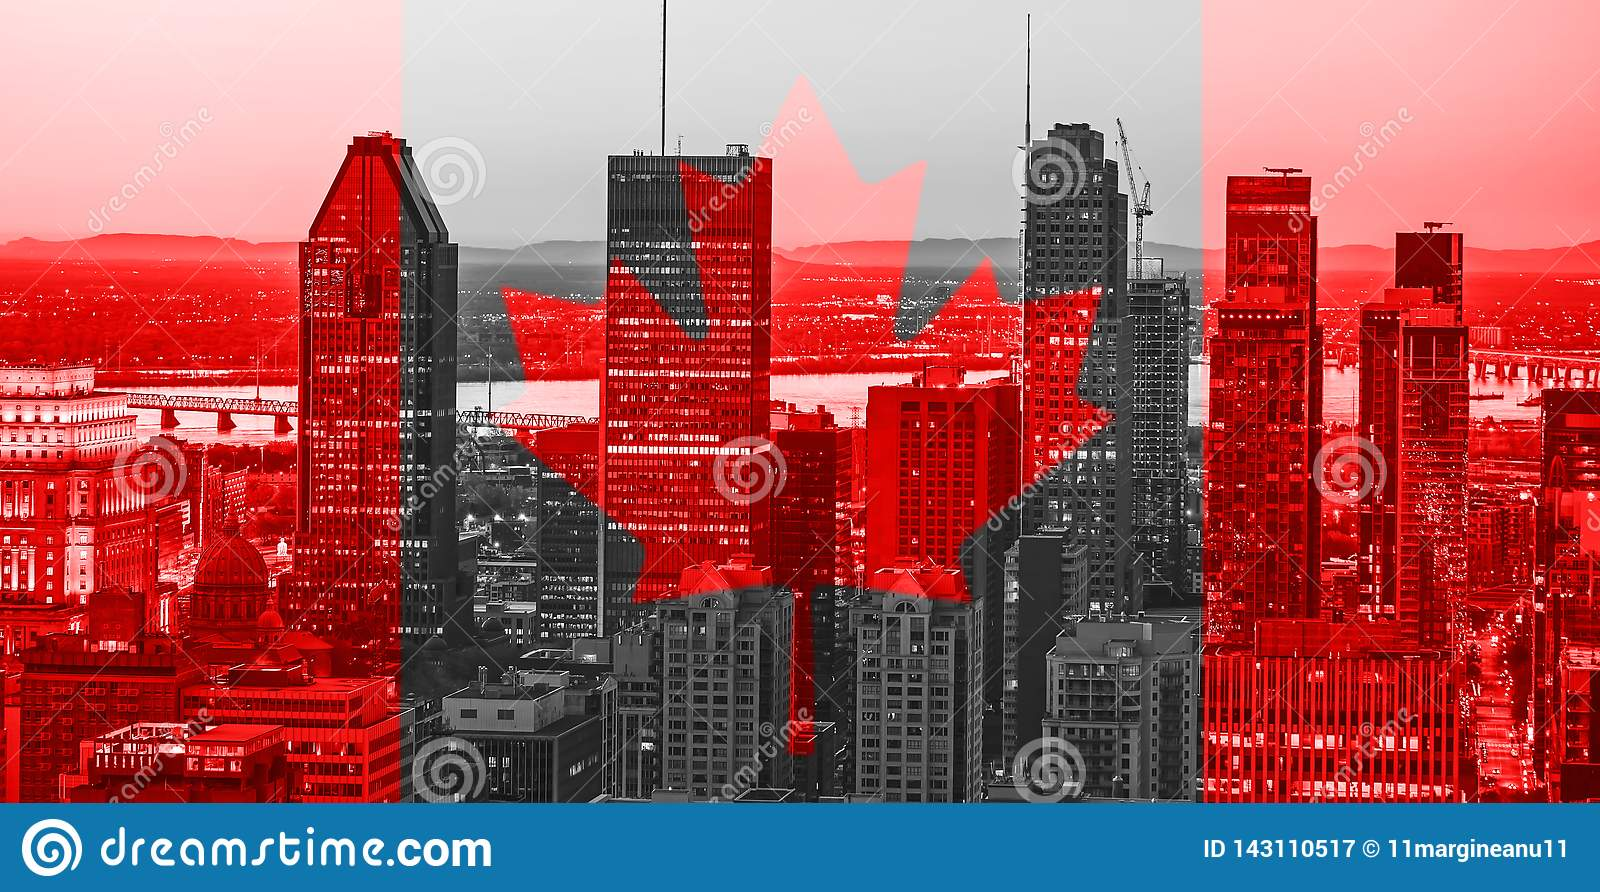 Red Canadian symbol over buildings of Montreal town at Canada National Day of 1st July. Canada Day flag with maple leaf on